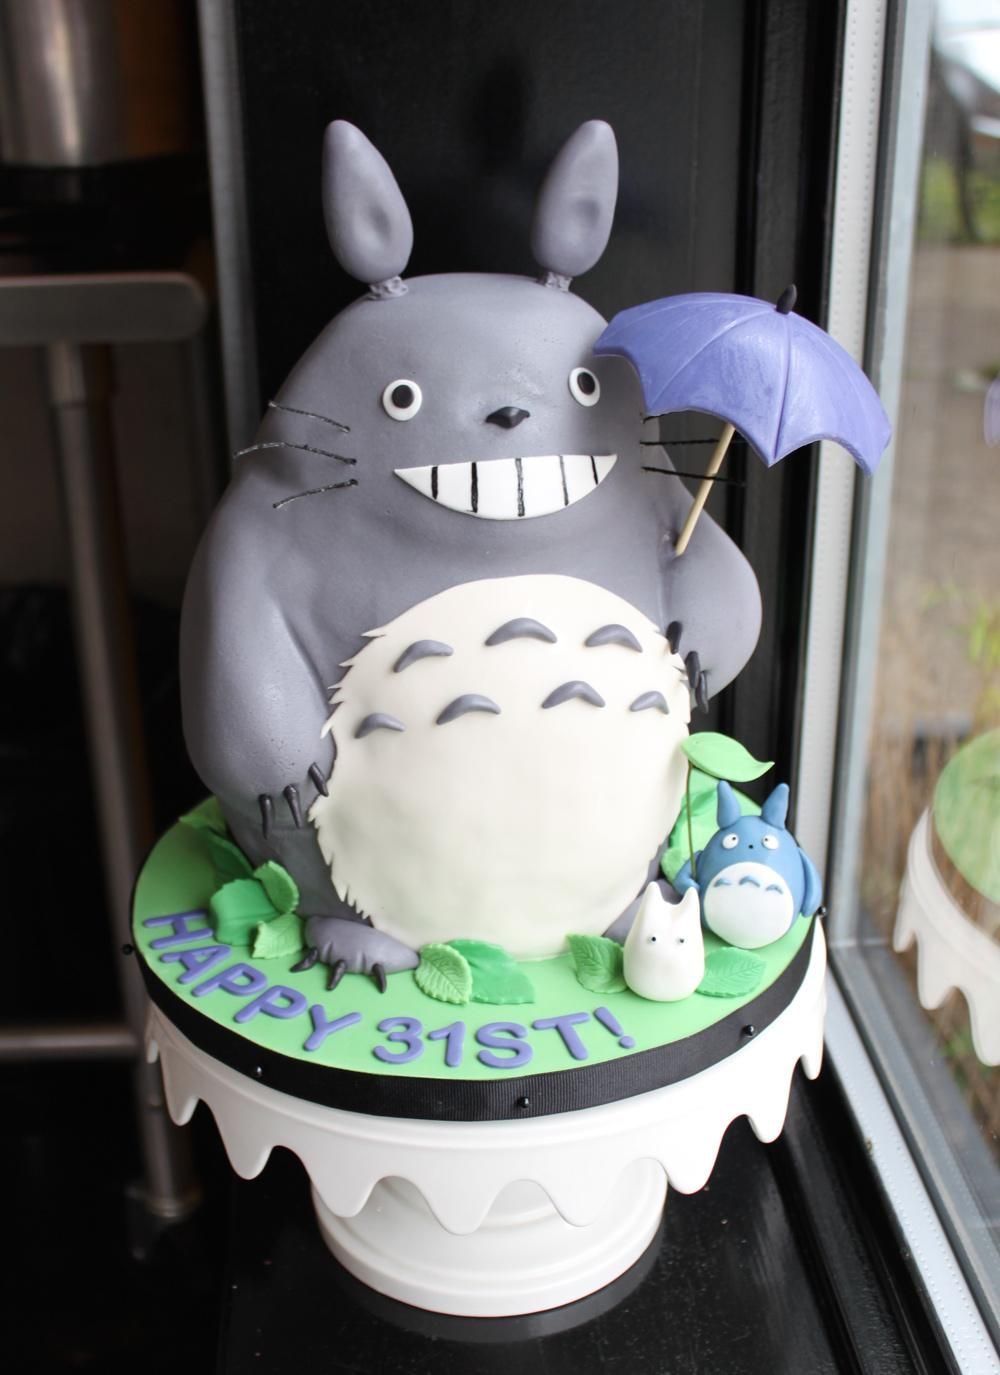 Wondrous Sculpted Totoro Birthday Cake Whipped Bakeshop With Images Funny Birthday Cards Online Aeocydamsfinfo